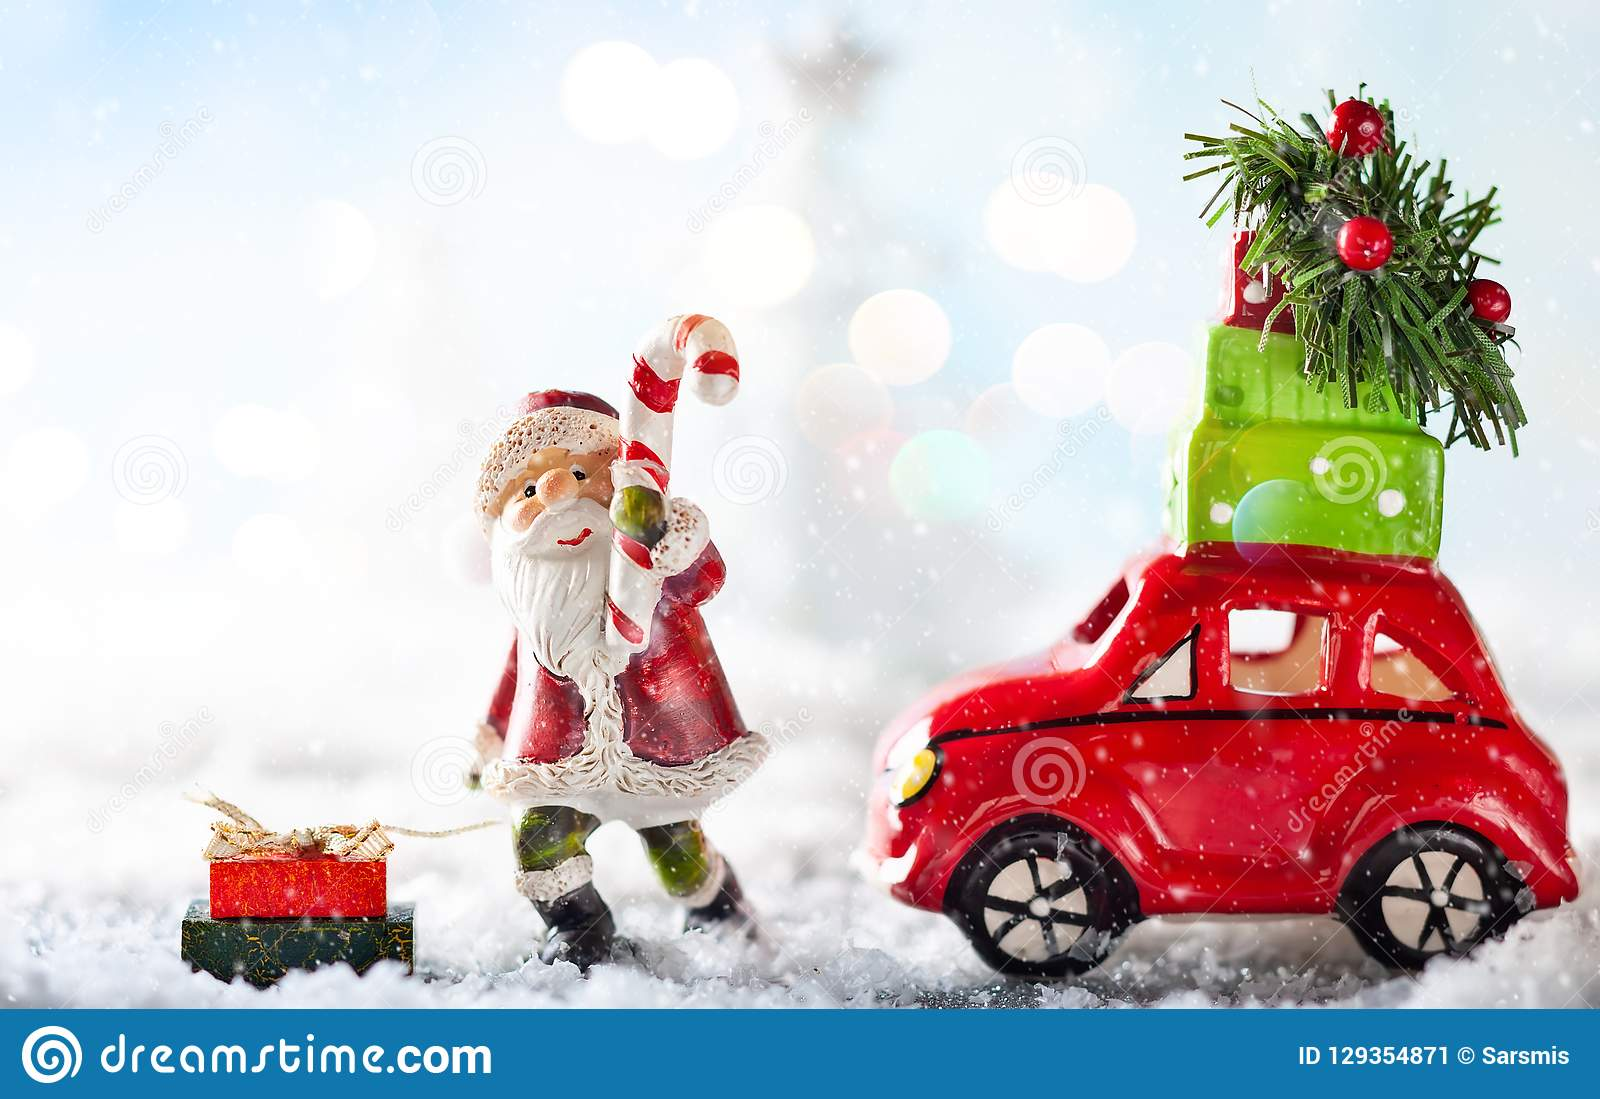 Santa Claus and red toy car carrying Christmas gifts in snowy la